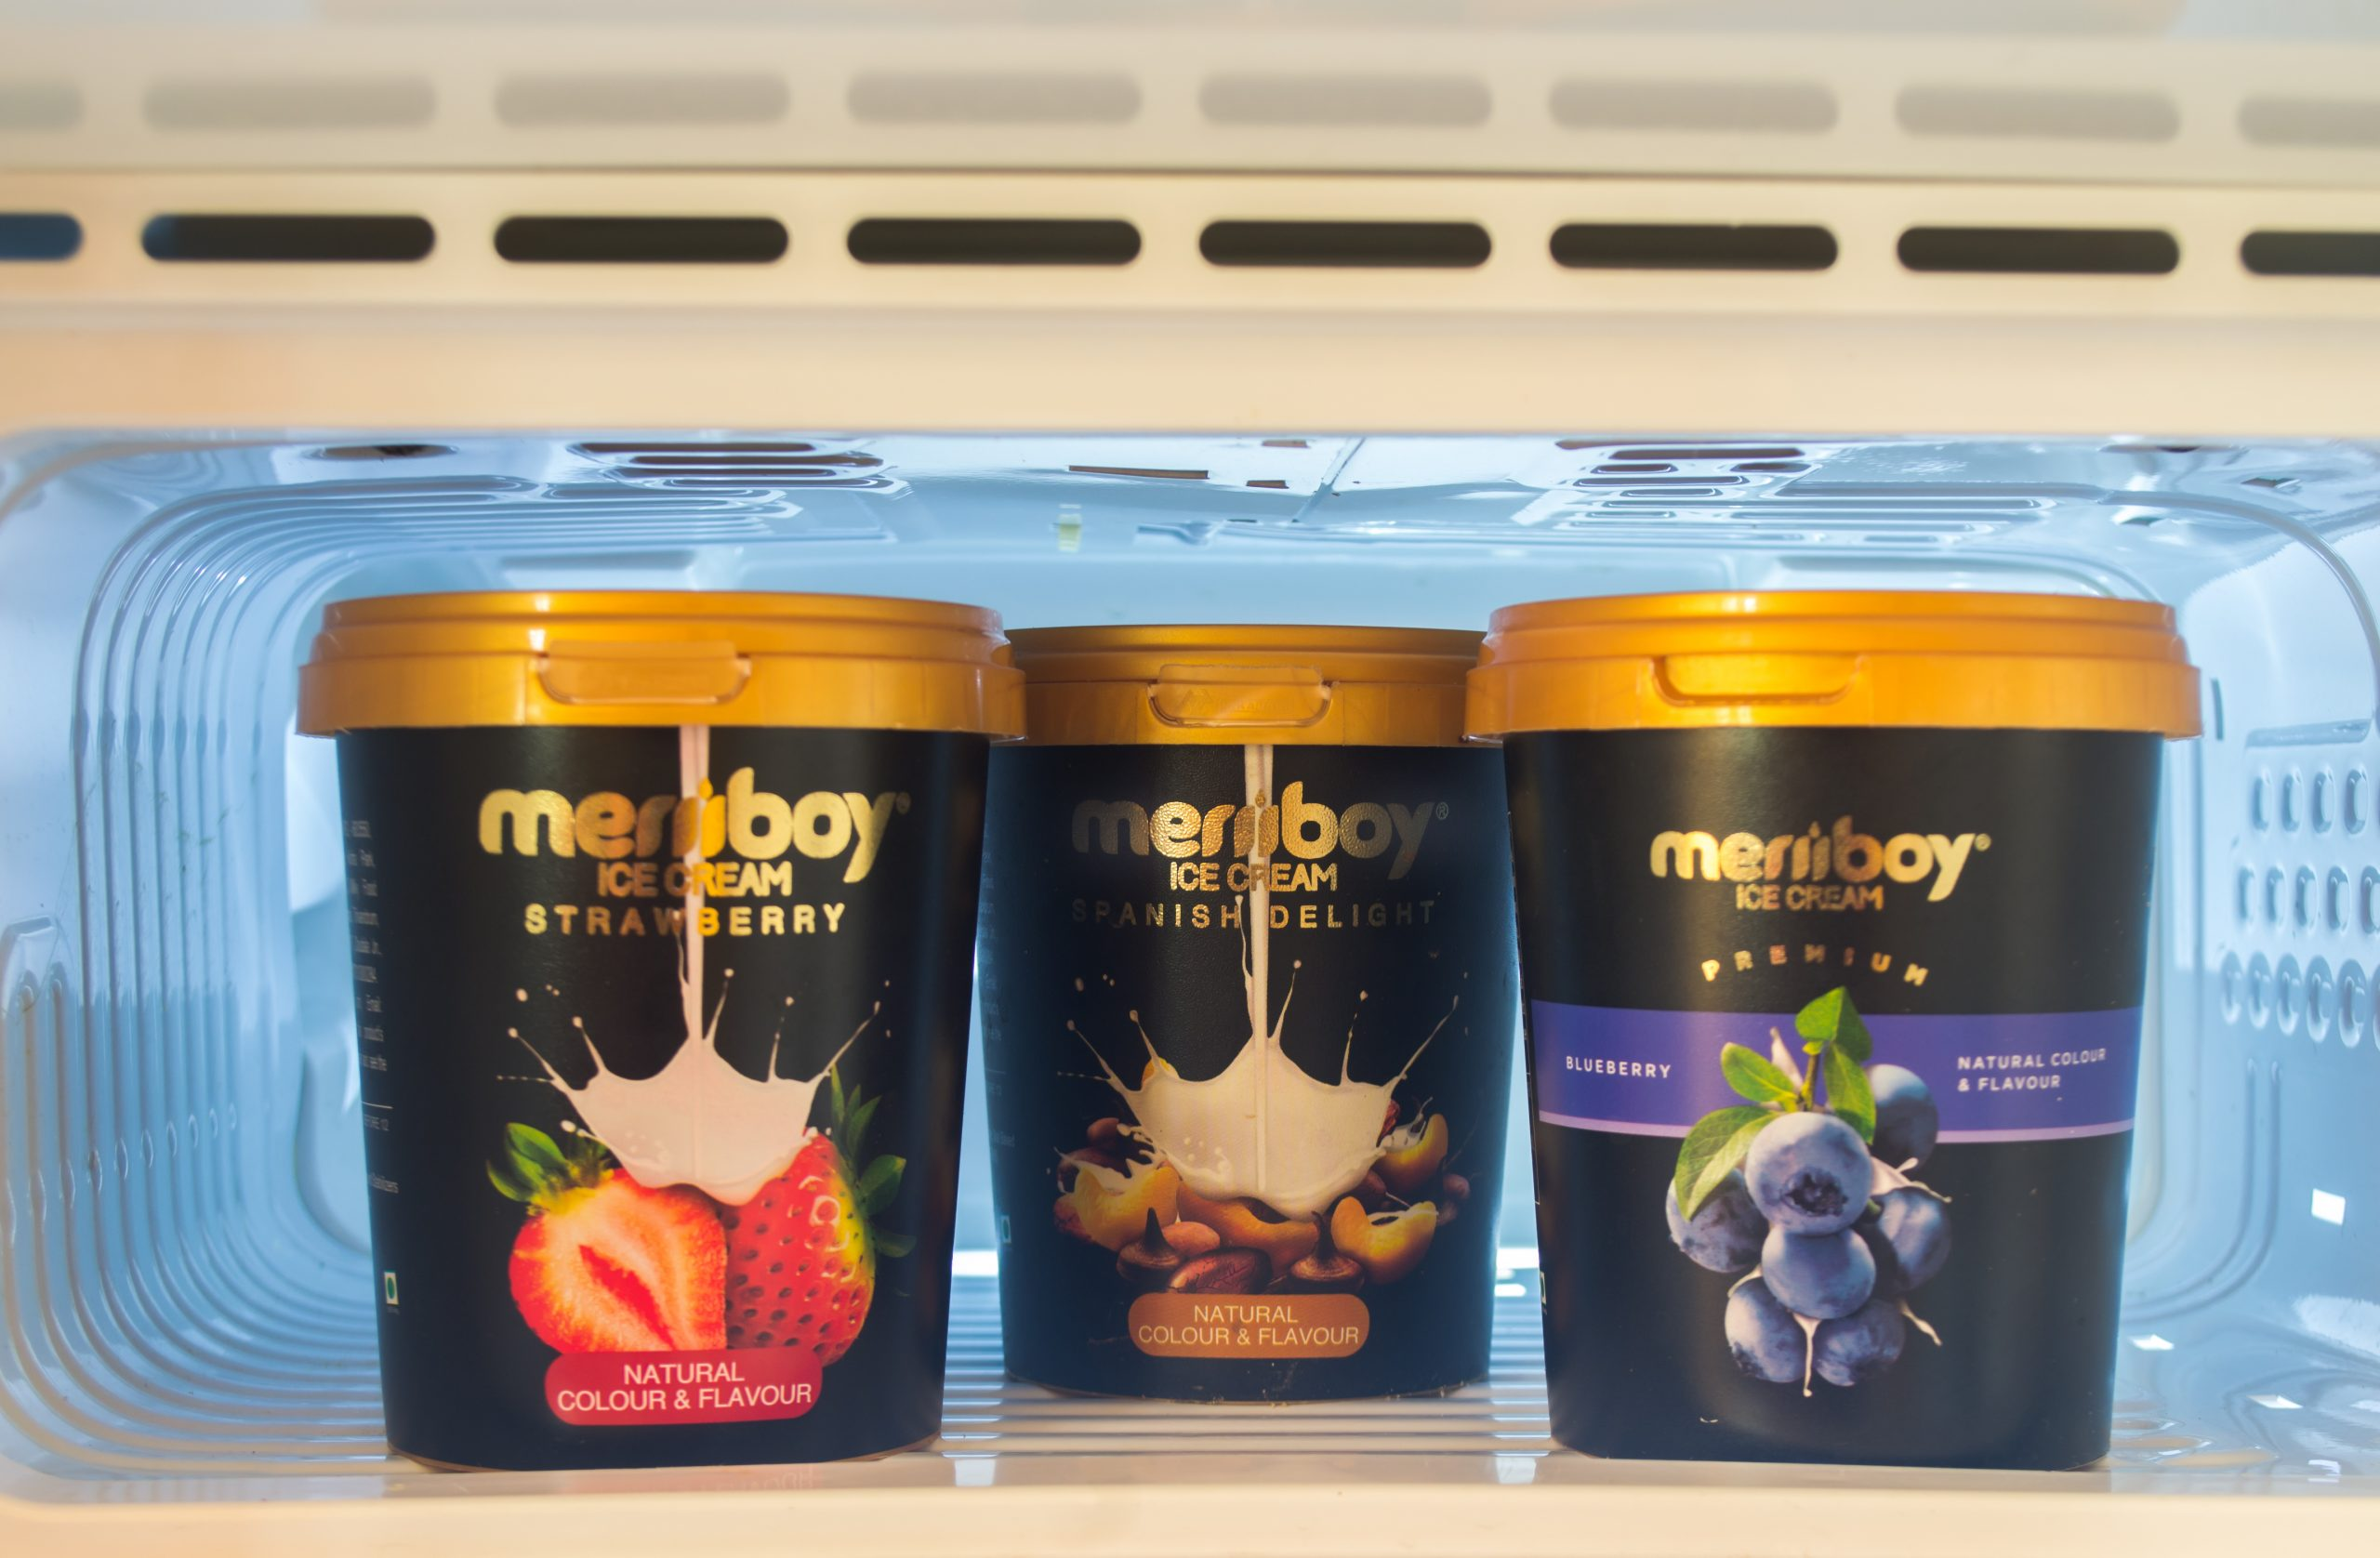 Meriiboy Ice cream packs in a freezer